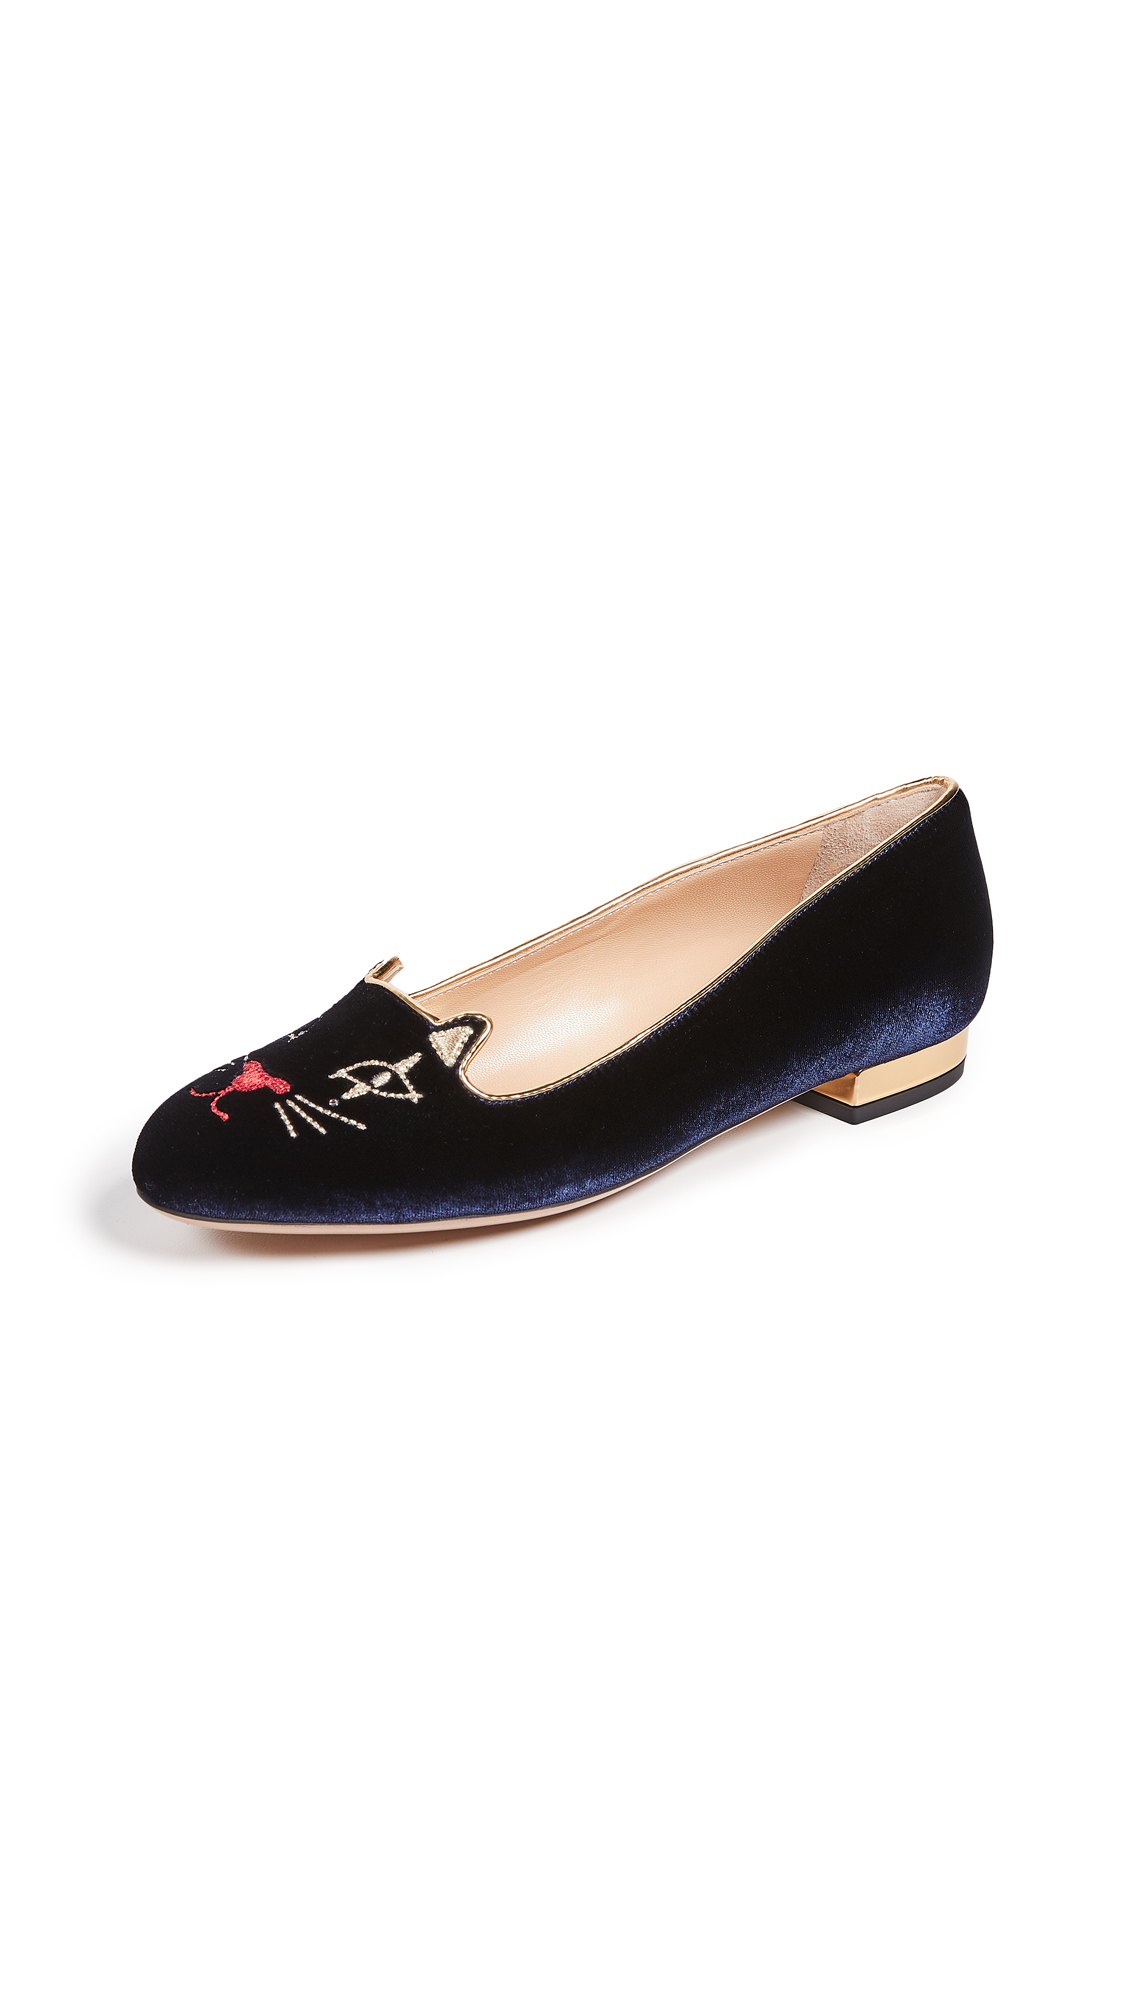 Charlotte Olympia Kitty Flats - Midnight Blue